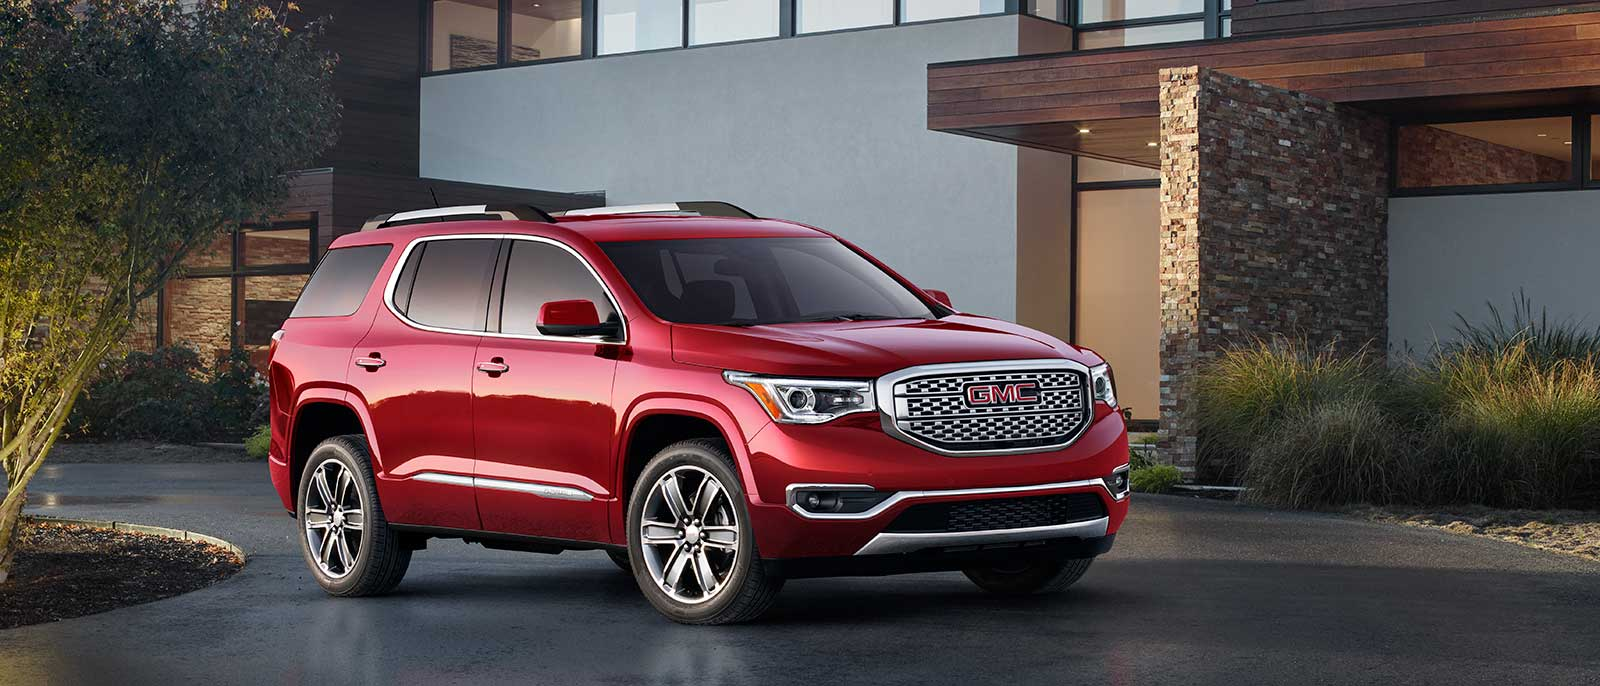 denali used c edgewater awd gmc near stock sale acadia for htm